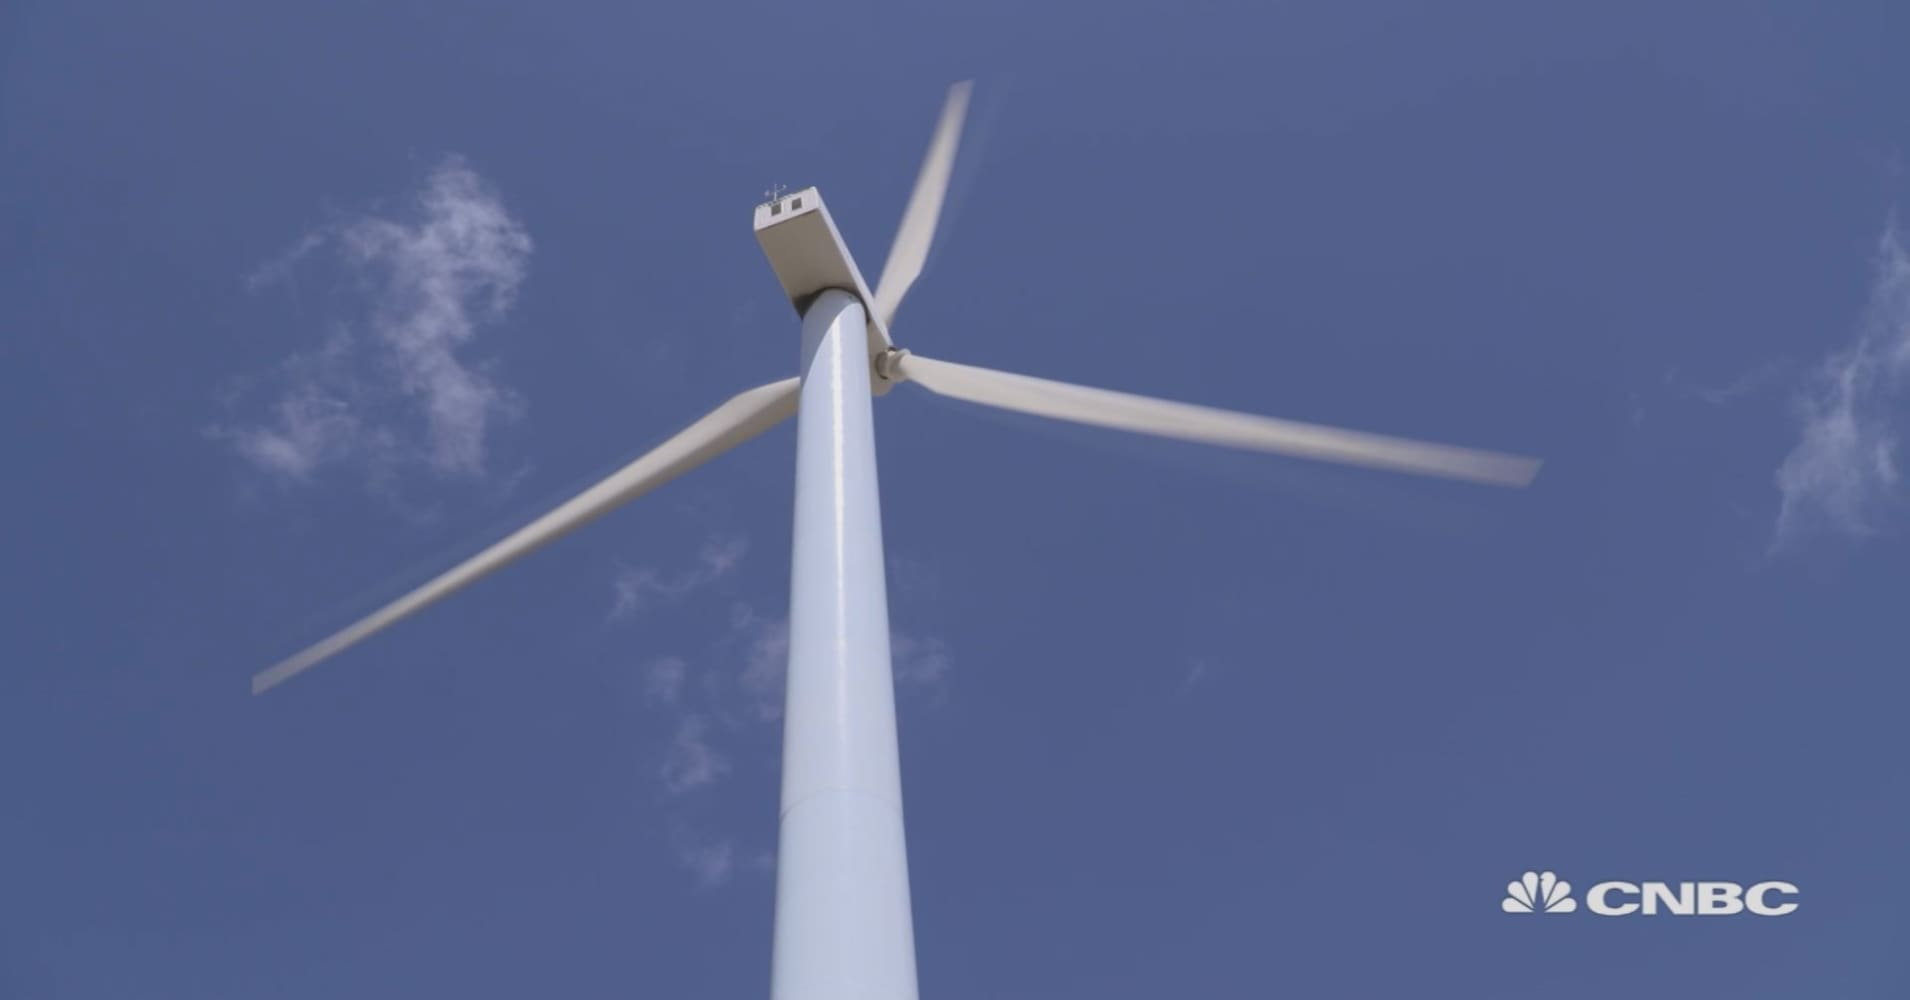 future of wind turbines could be bladeless